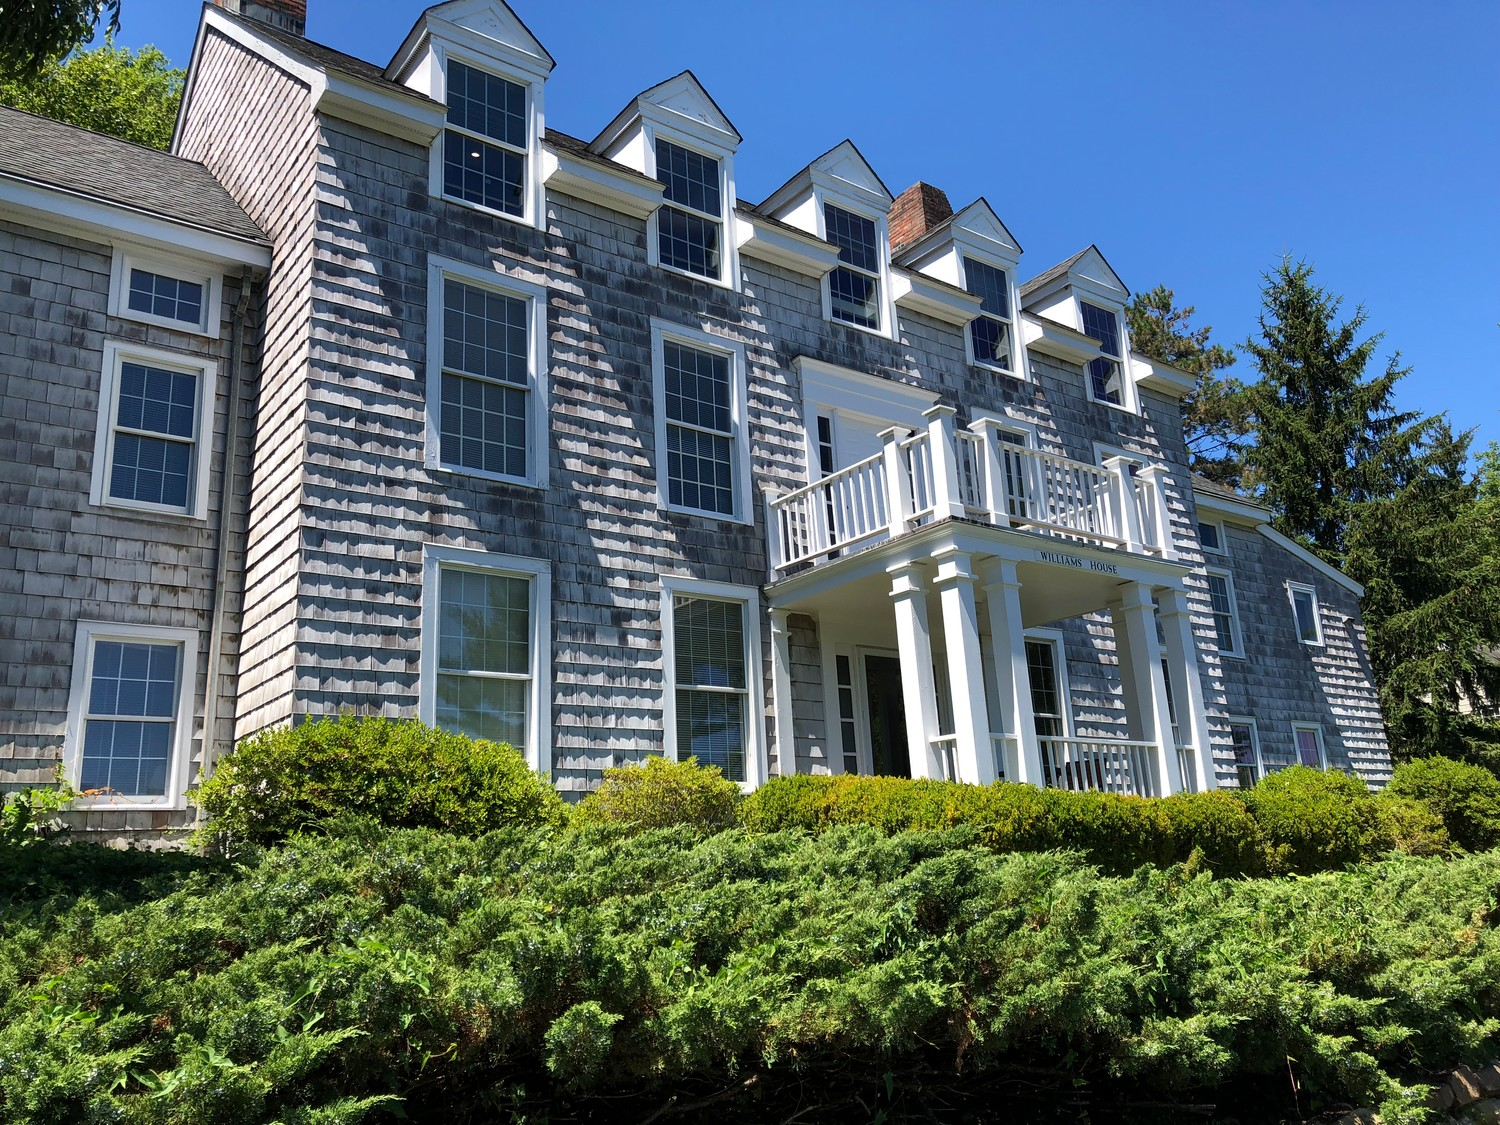 Many of CSHL's buildings look like they belong in a New England fishing village. Above, Williams House.